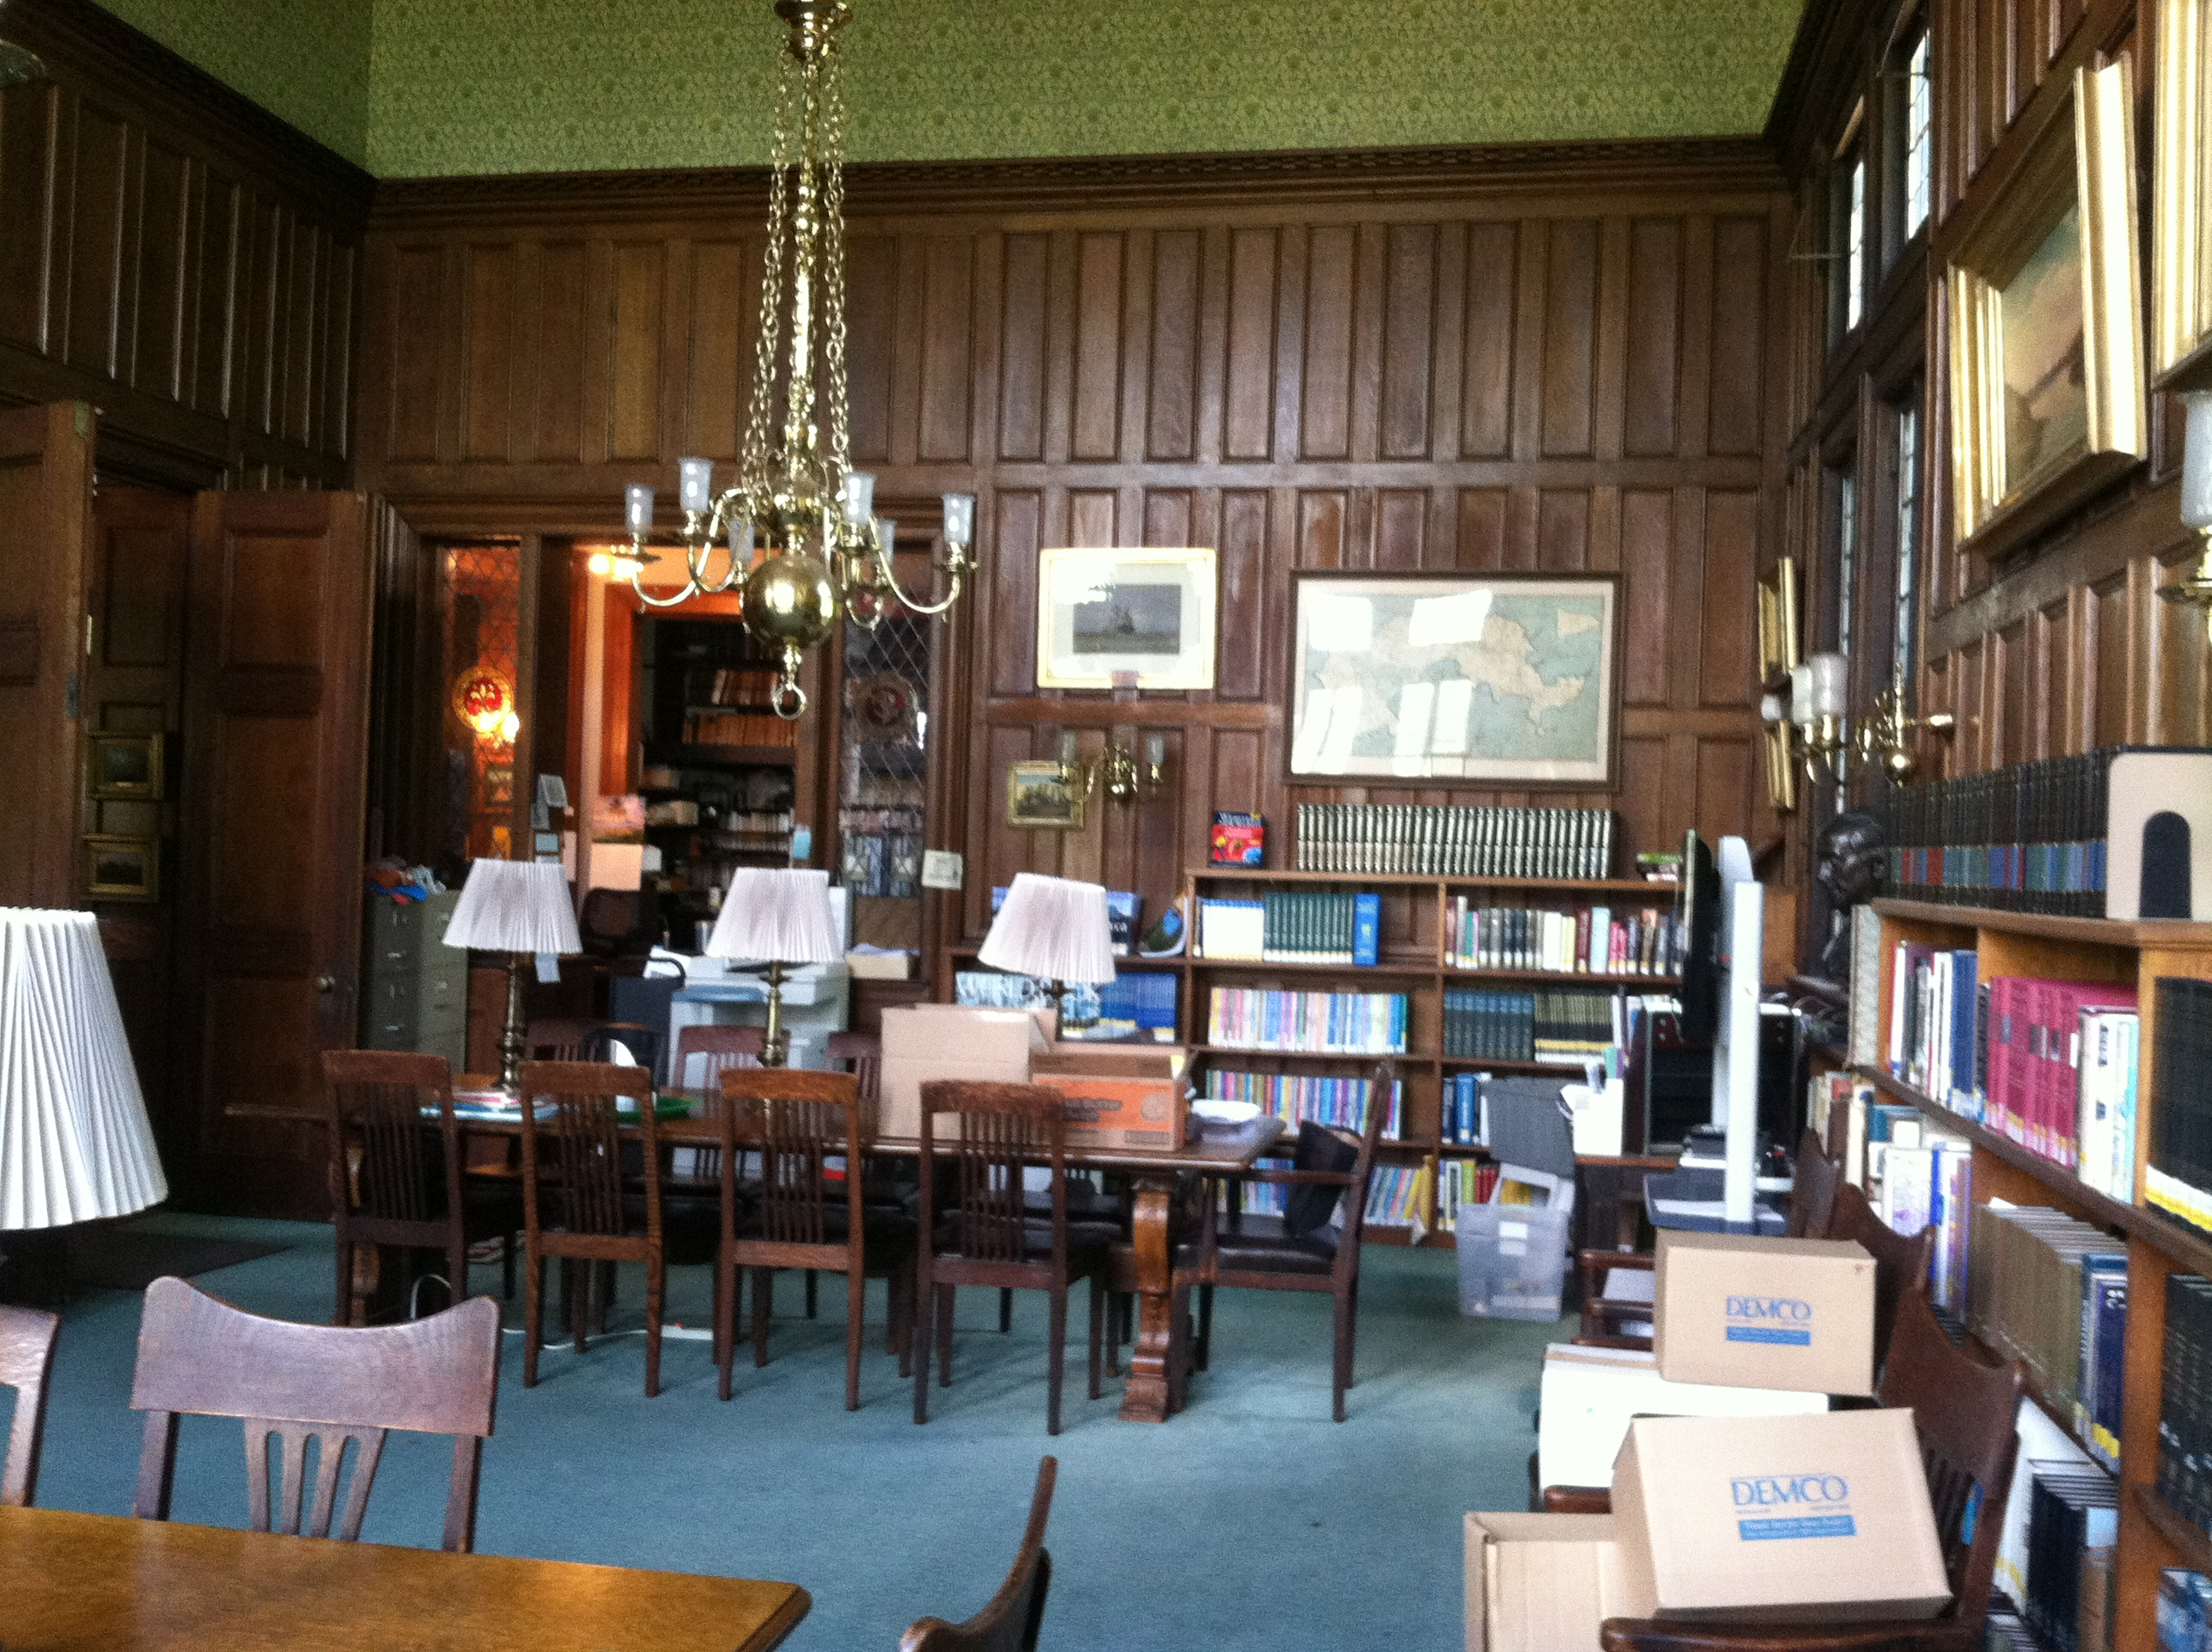 library image 2